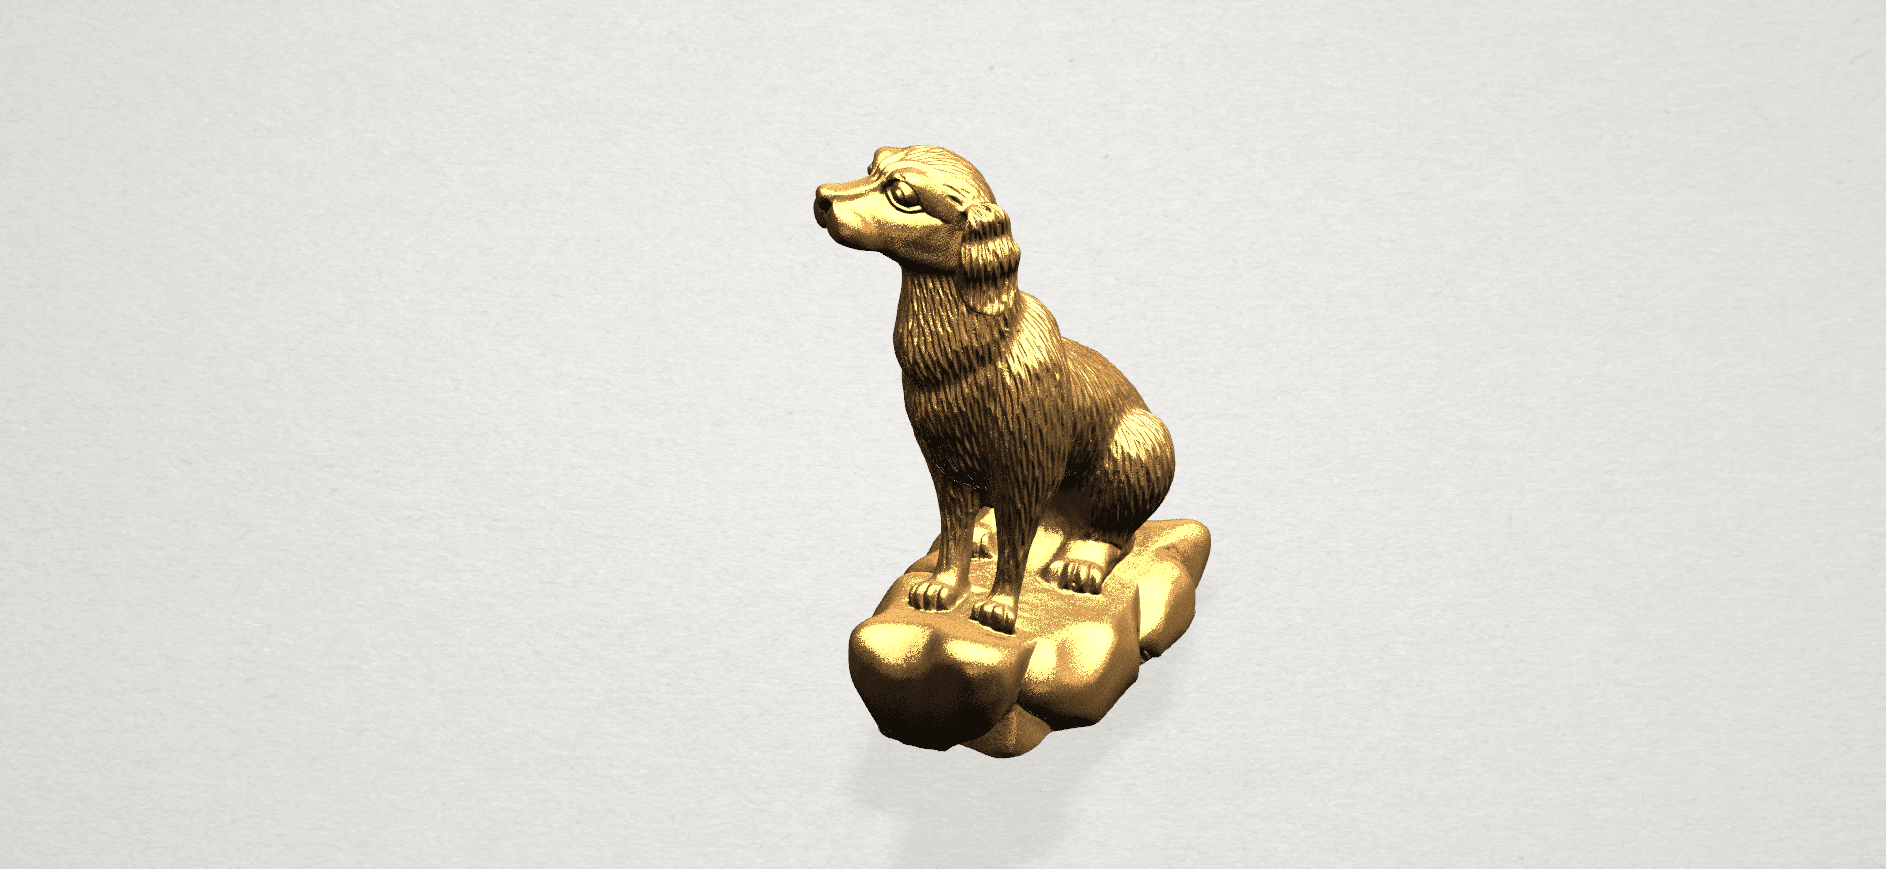 ZChinese Horoscope11-B05.png Download free STL file Chinese Horoscope 11 Dog • 3D print design, GeorgesNikkei